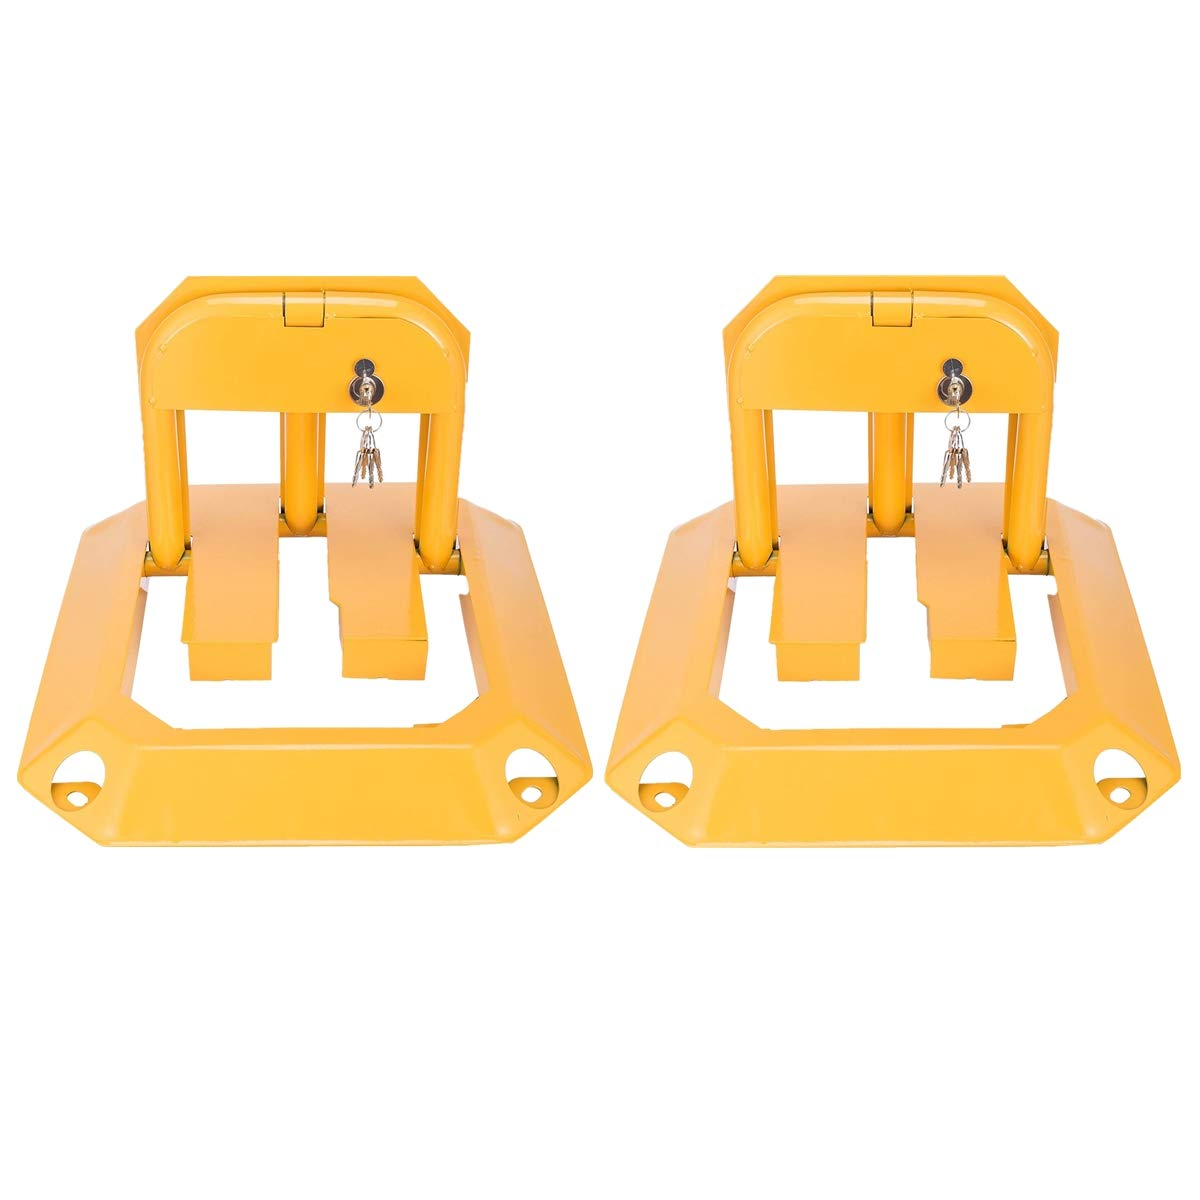 2 x Noveste Parking Barrier Manual Including 5 Keys 56 x 46.5 x 32 cm Yellow